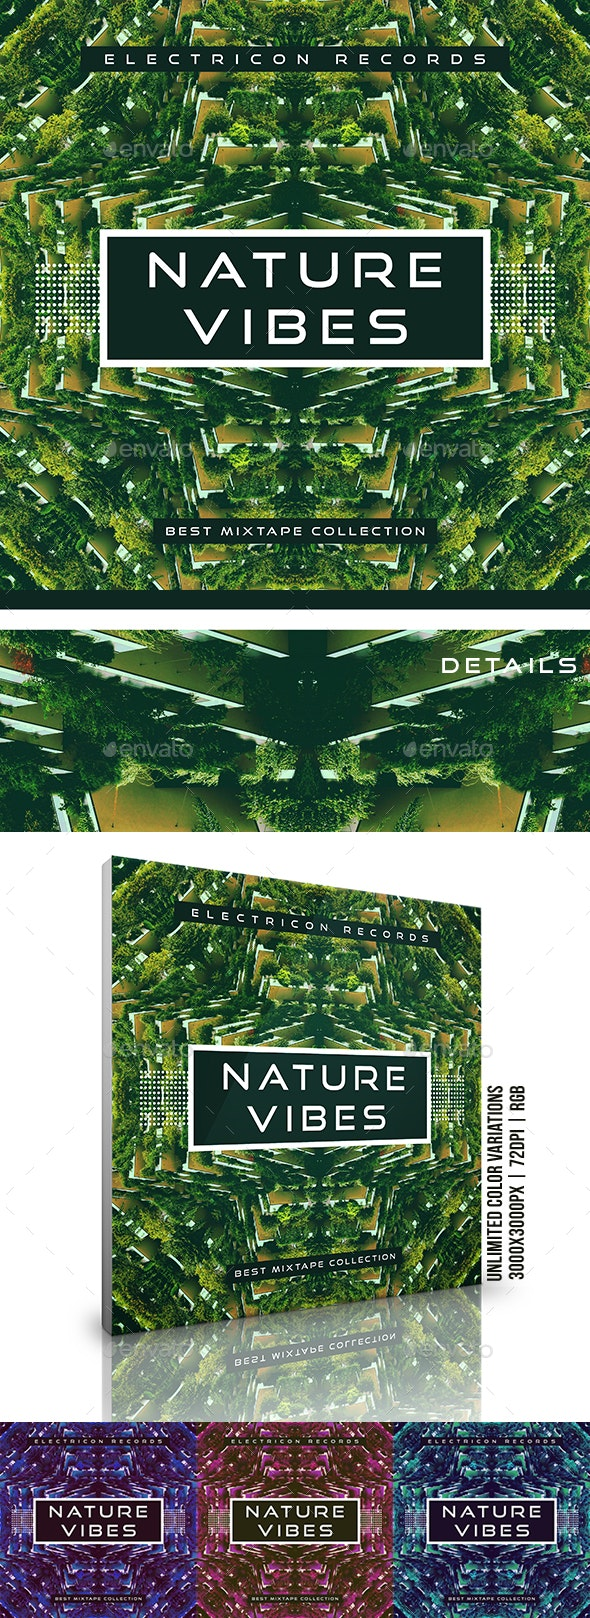 Nature Vibes Abstract Music Cover Album Artwork Template - Miscellaneous Social Media